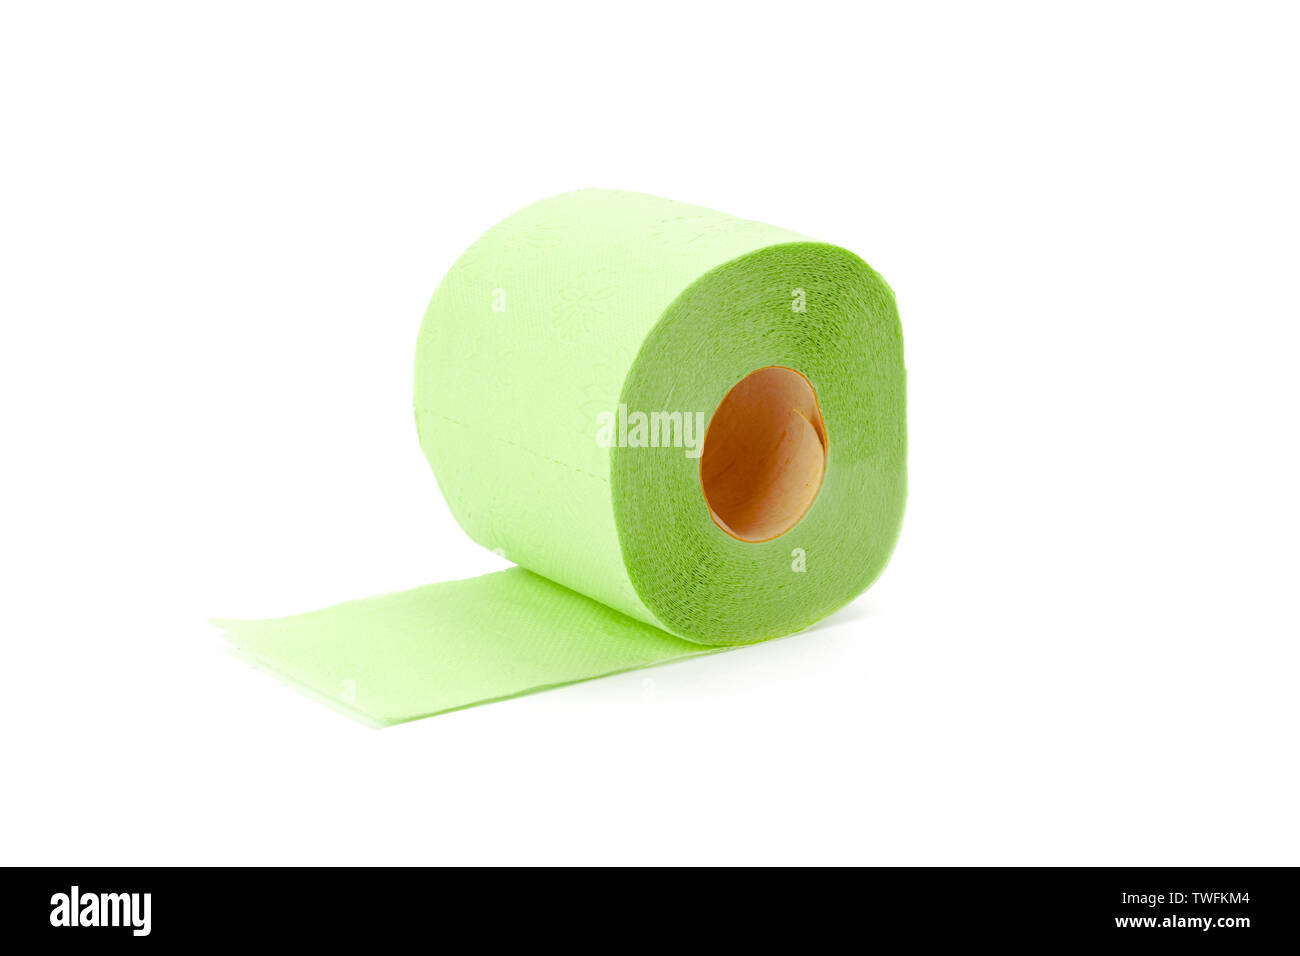 toilet paper isolated on white background - Stock Image